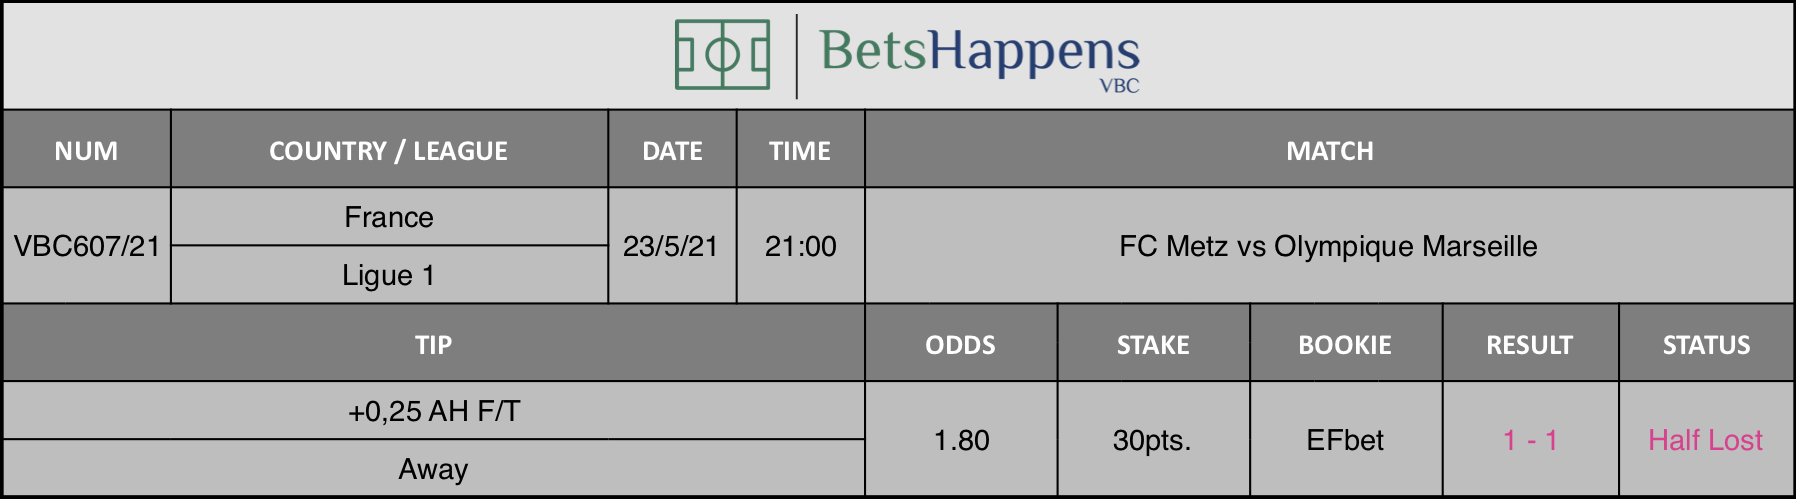 Results of our tip for the FC Metz vs Olympique Marseille match where +0,25 AH F/T  Away is recommended.